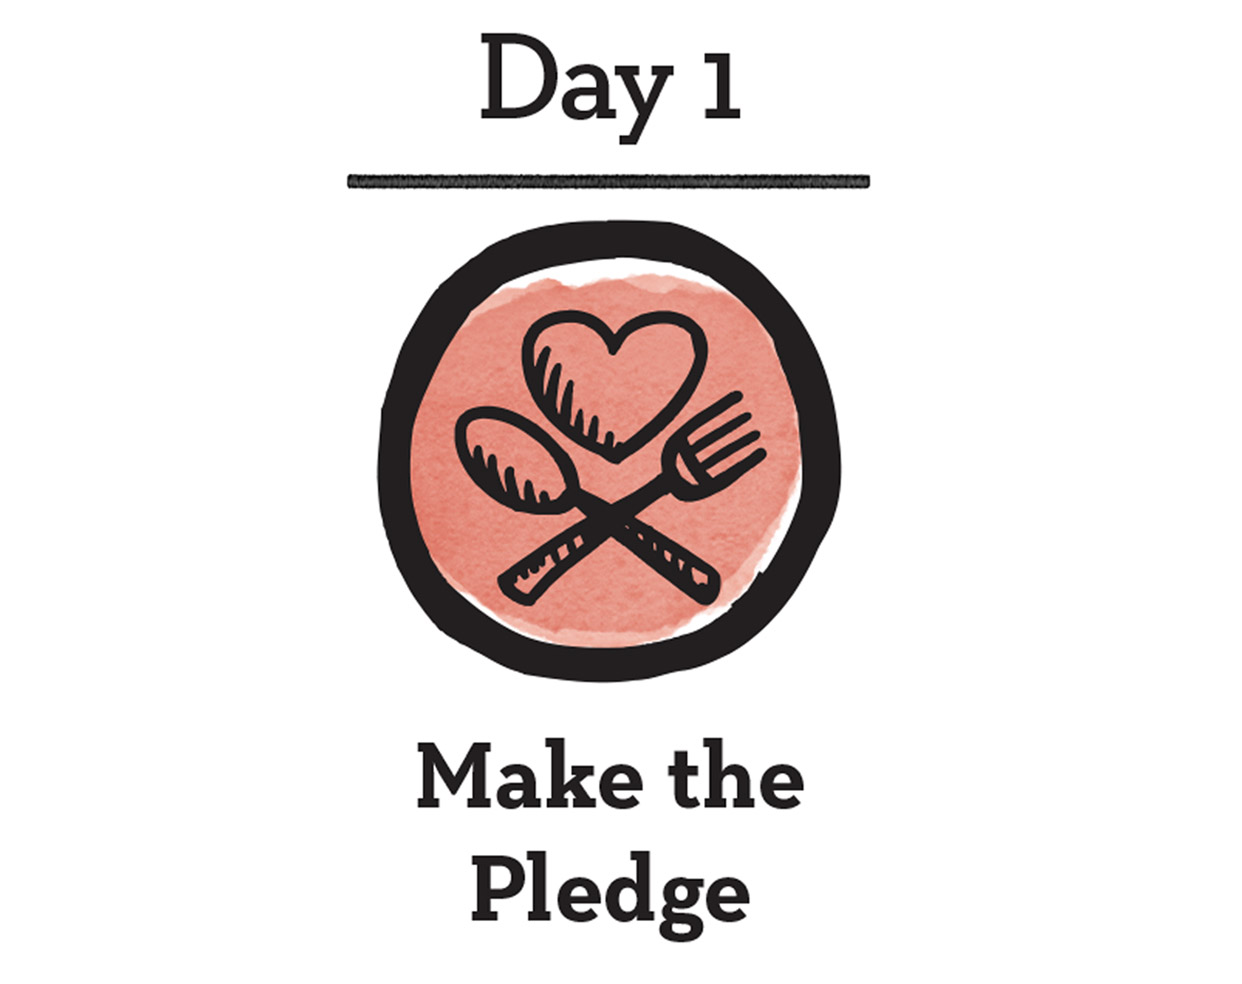 - Good For You & Good For The Planet:Sometimes the smallest steps make the biggest difference. By committing to becoming more mindful about your eating and cooking habits, you are also committing to lowering your carbon footprint. Congrats on making the pledge!